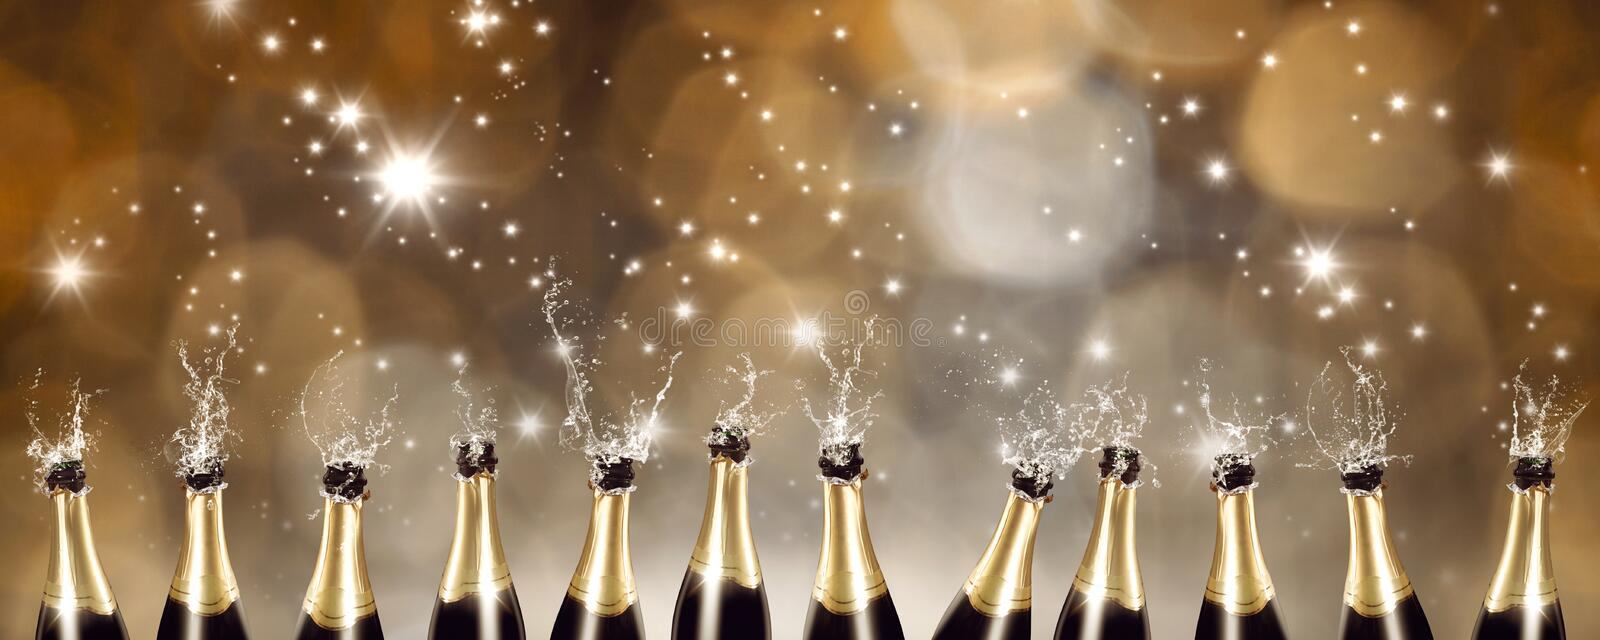 Splashing Champagne bottles with blurred lights in the background stock images